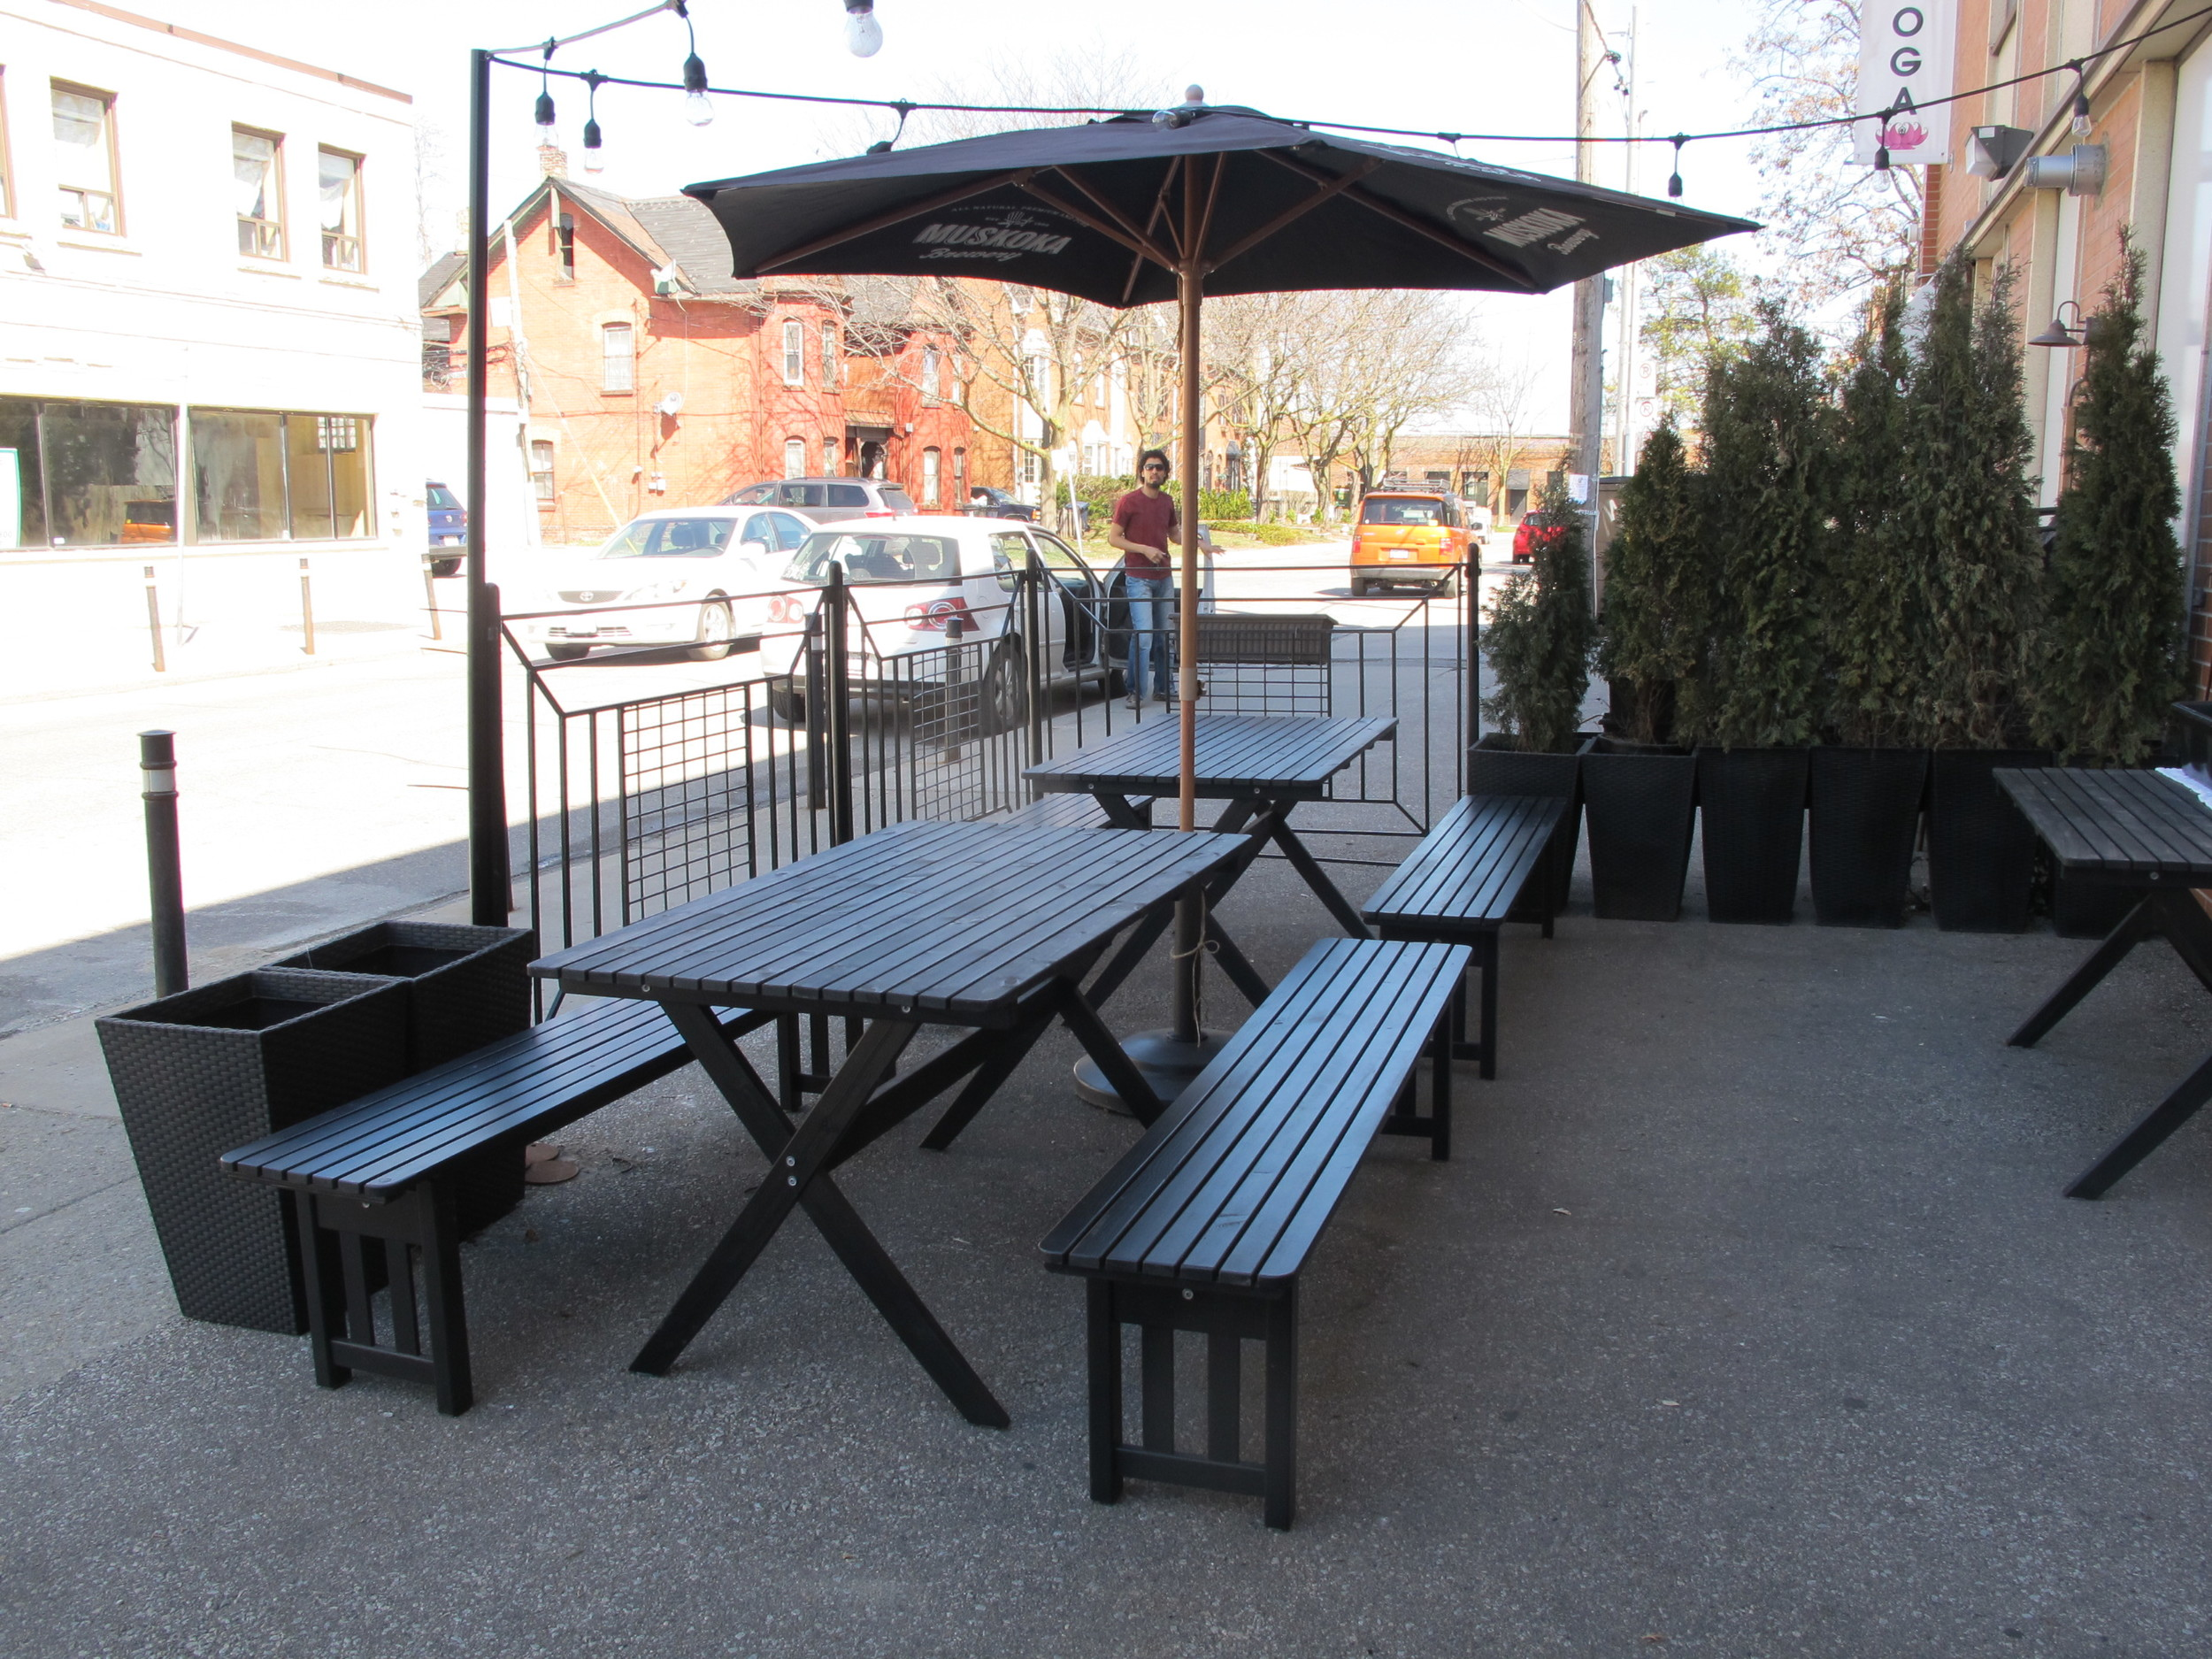 Picture of picnic table on accessible patio from sidewalk level